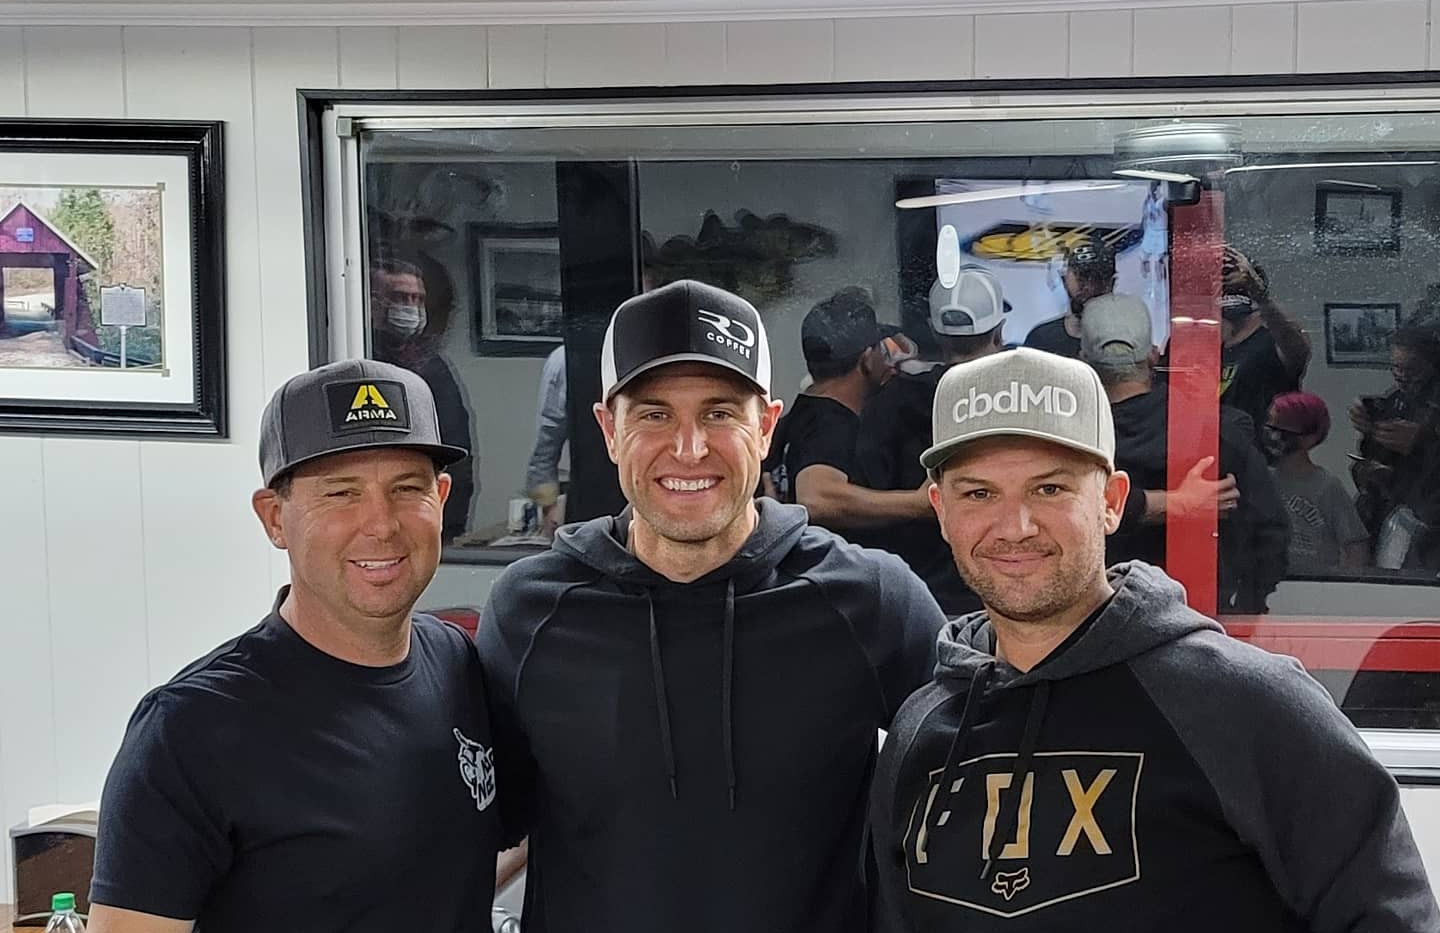 McGrath, Dungey and Reed